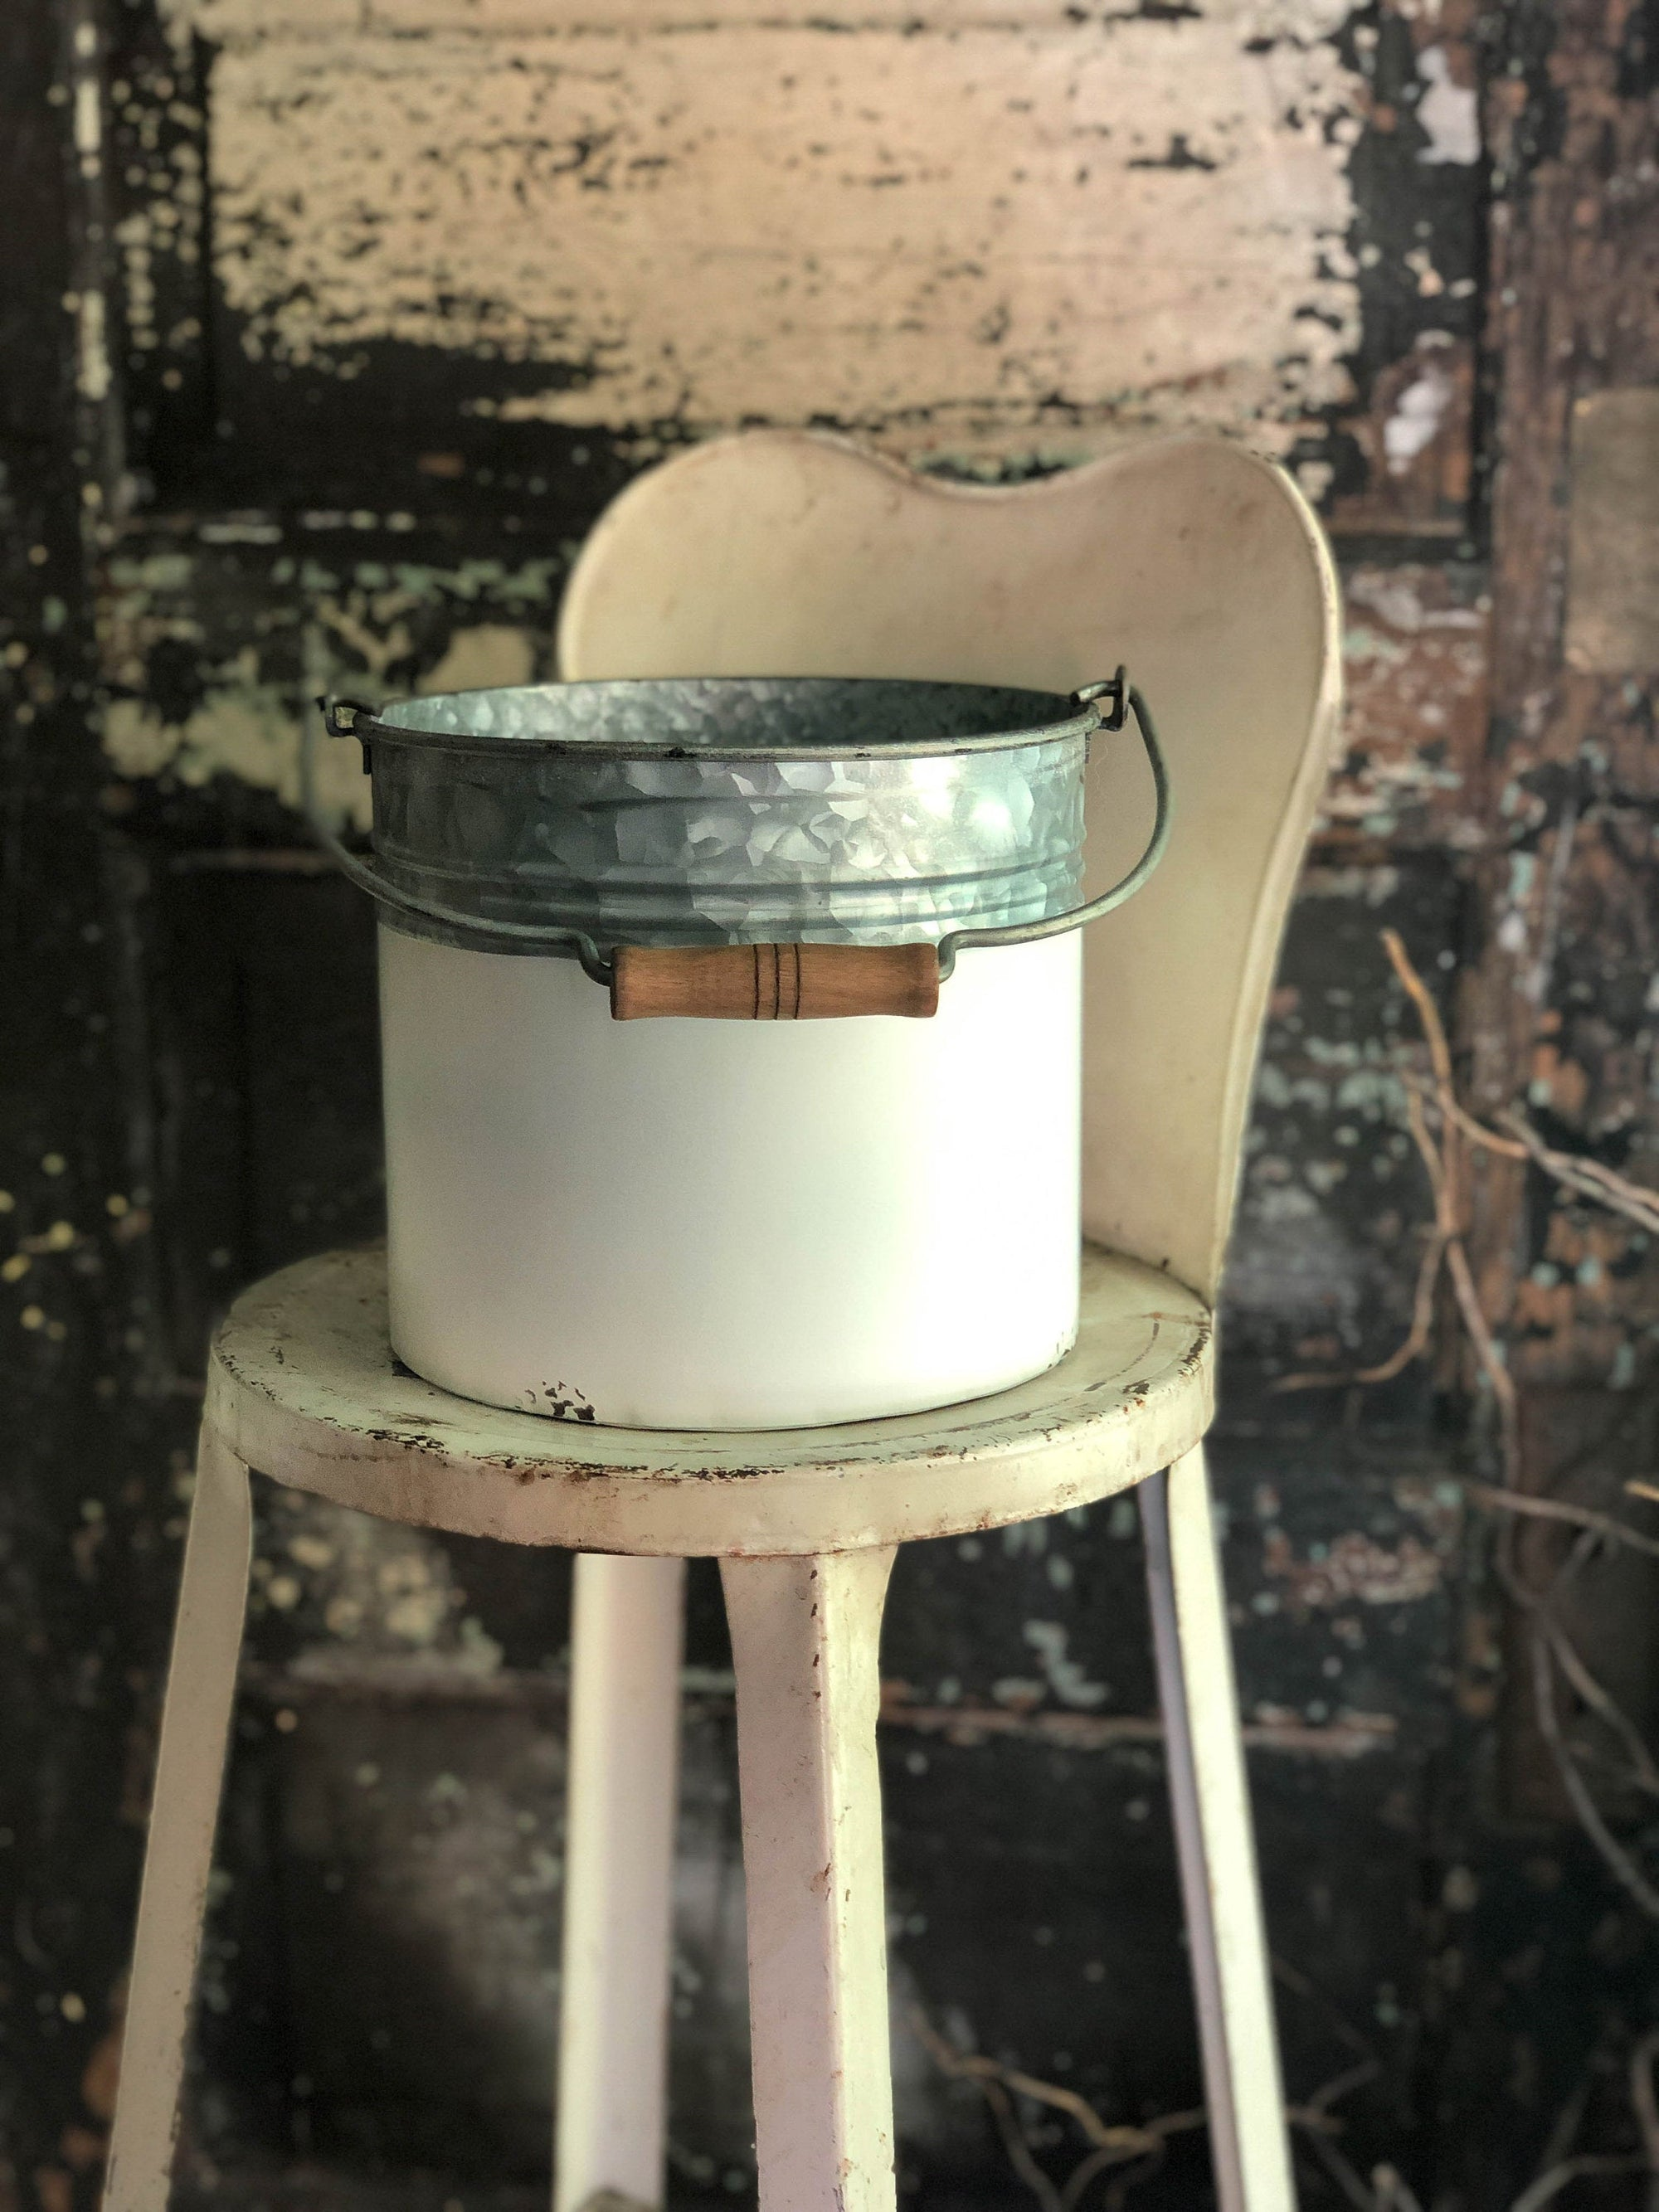 Farmhouse galvanized white pail with wood handle~Rustic primitive decor~fixer upper decor~galvanized bucket planter~shabby chic container